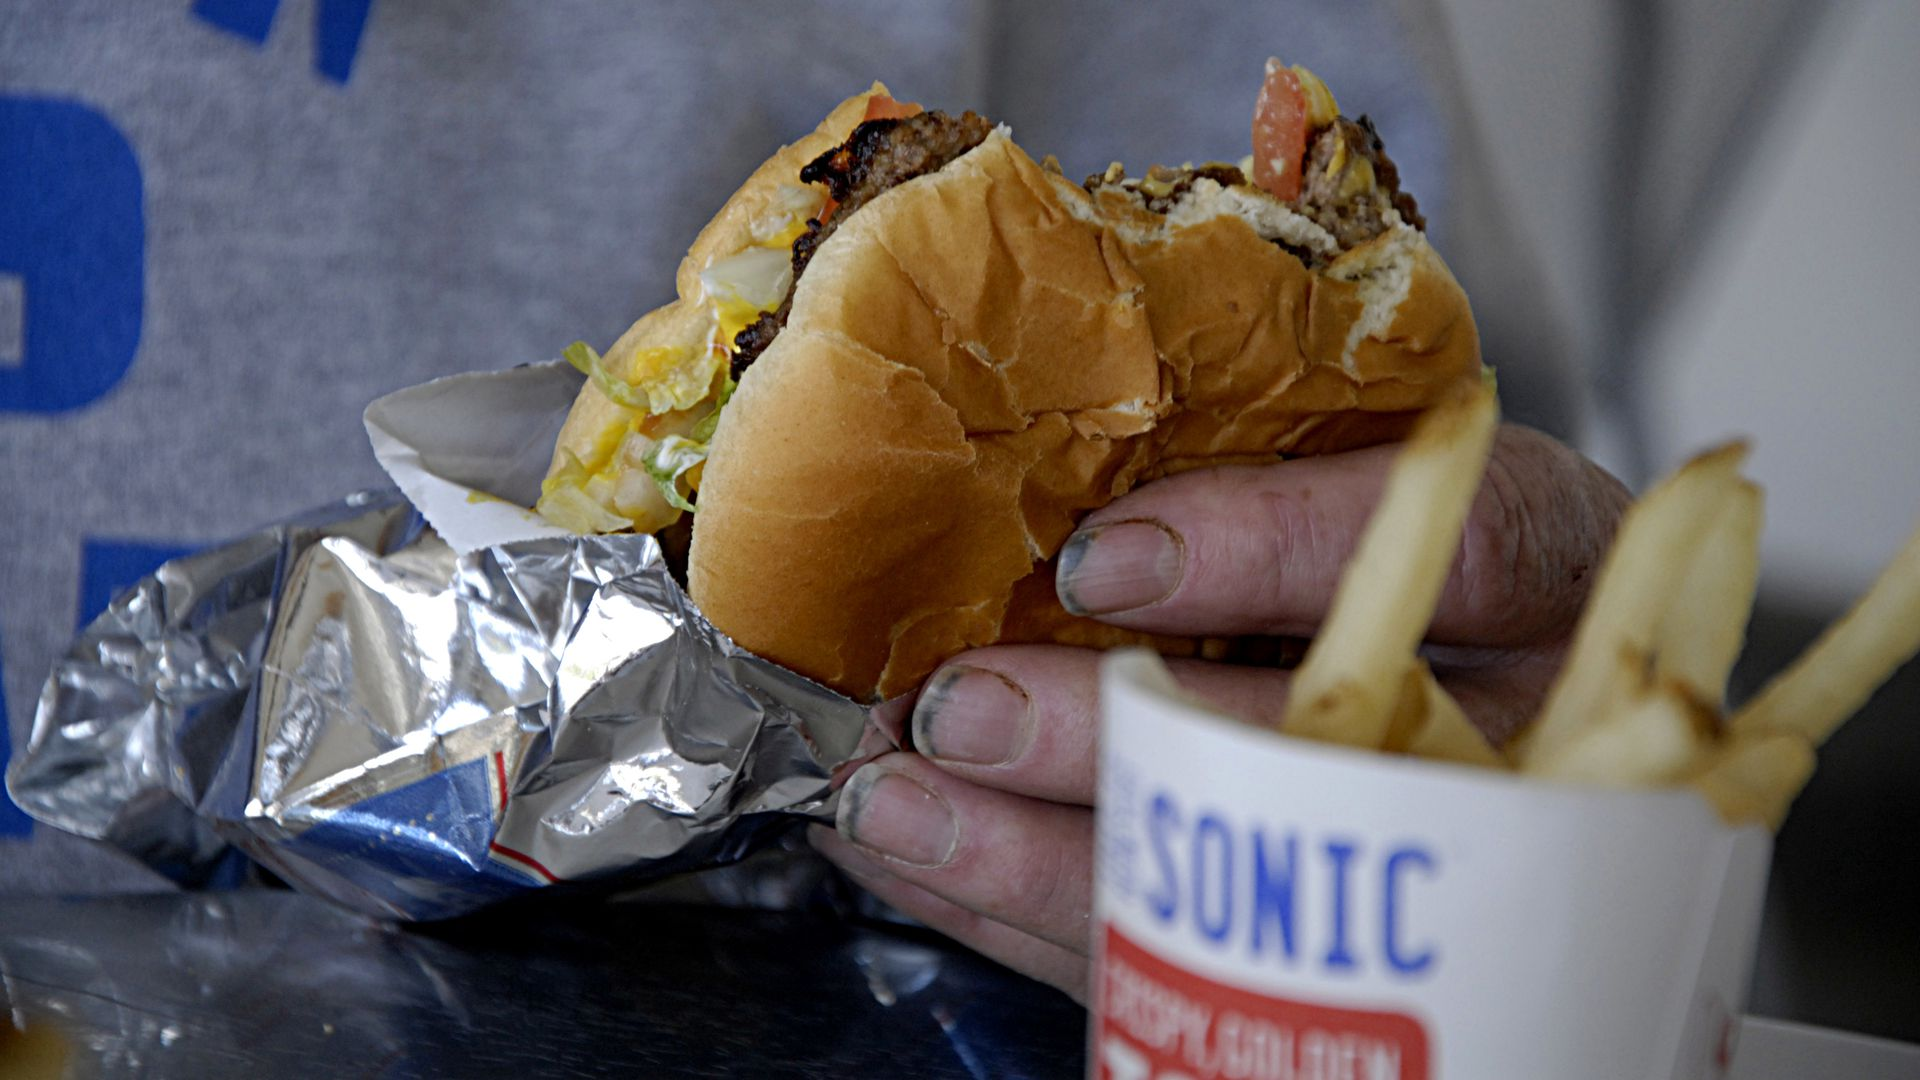 A burger and french fries from a Sonic restaurant.